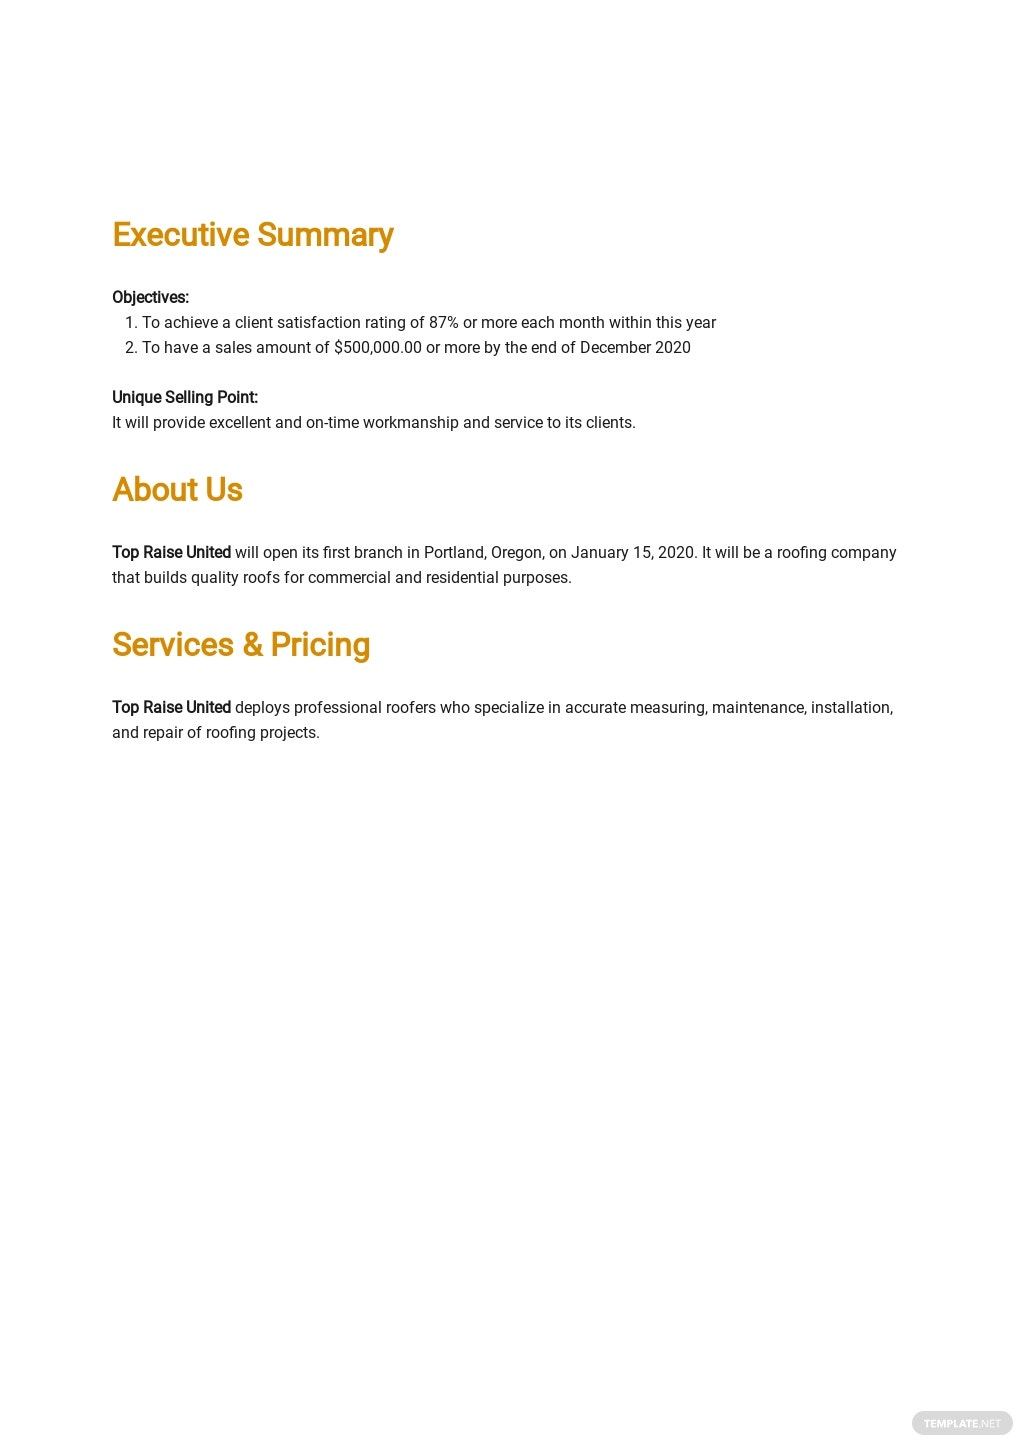 Roofing Company Business Plan Template 1.jpe